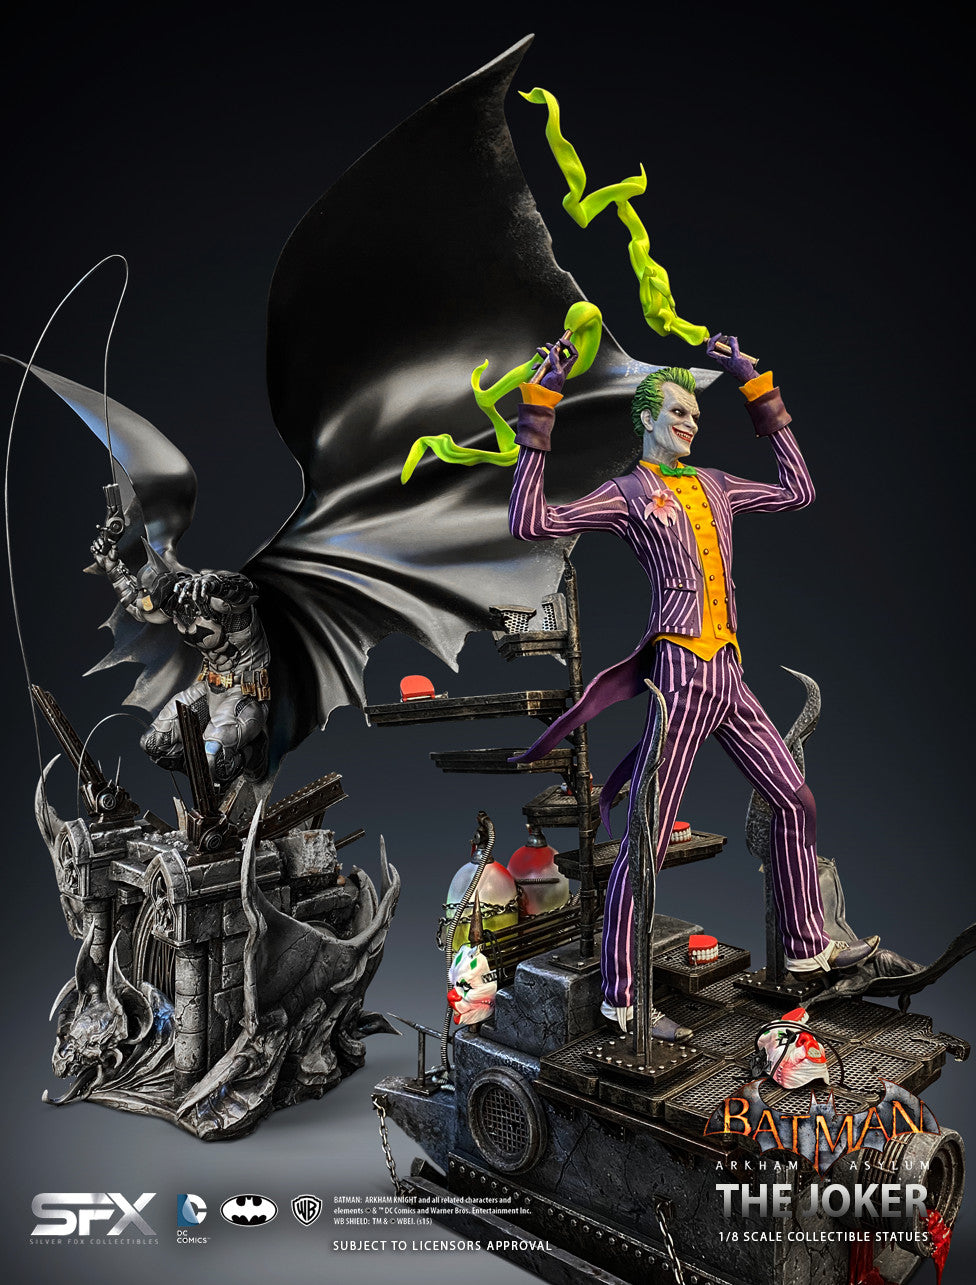 The Joker Arkham Asylum 1:8 Scale Statue Coming Soon